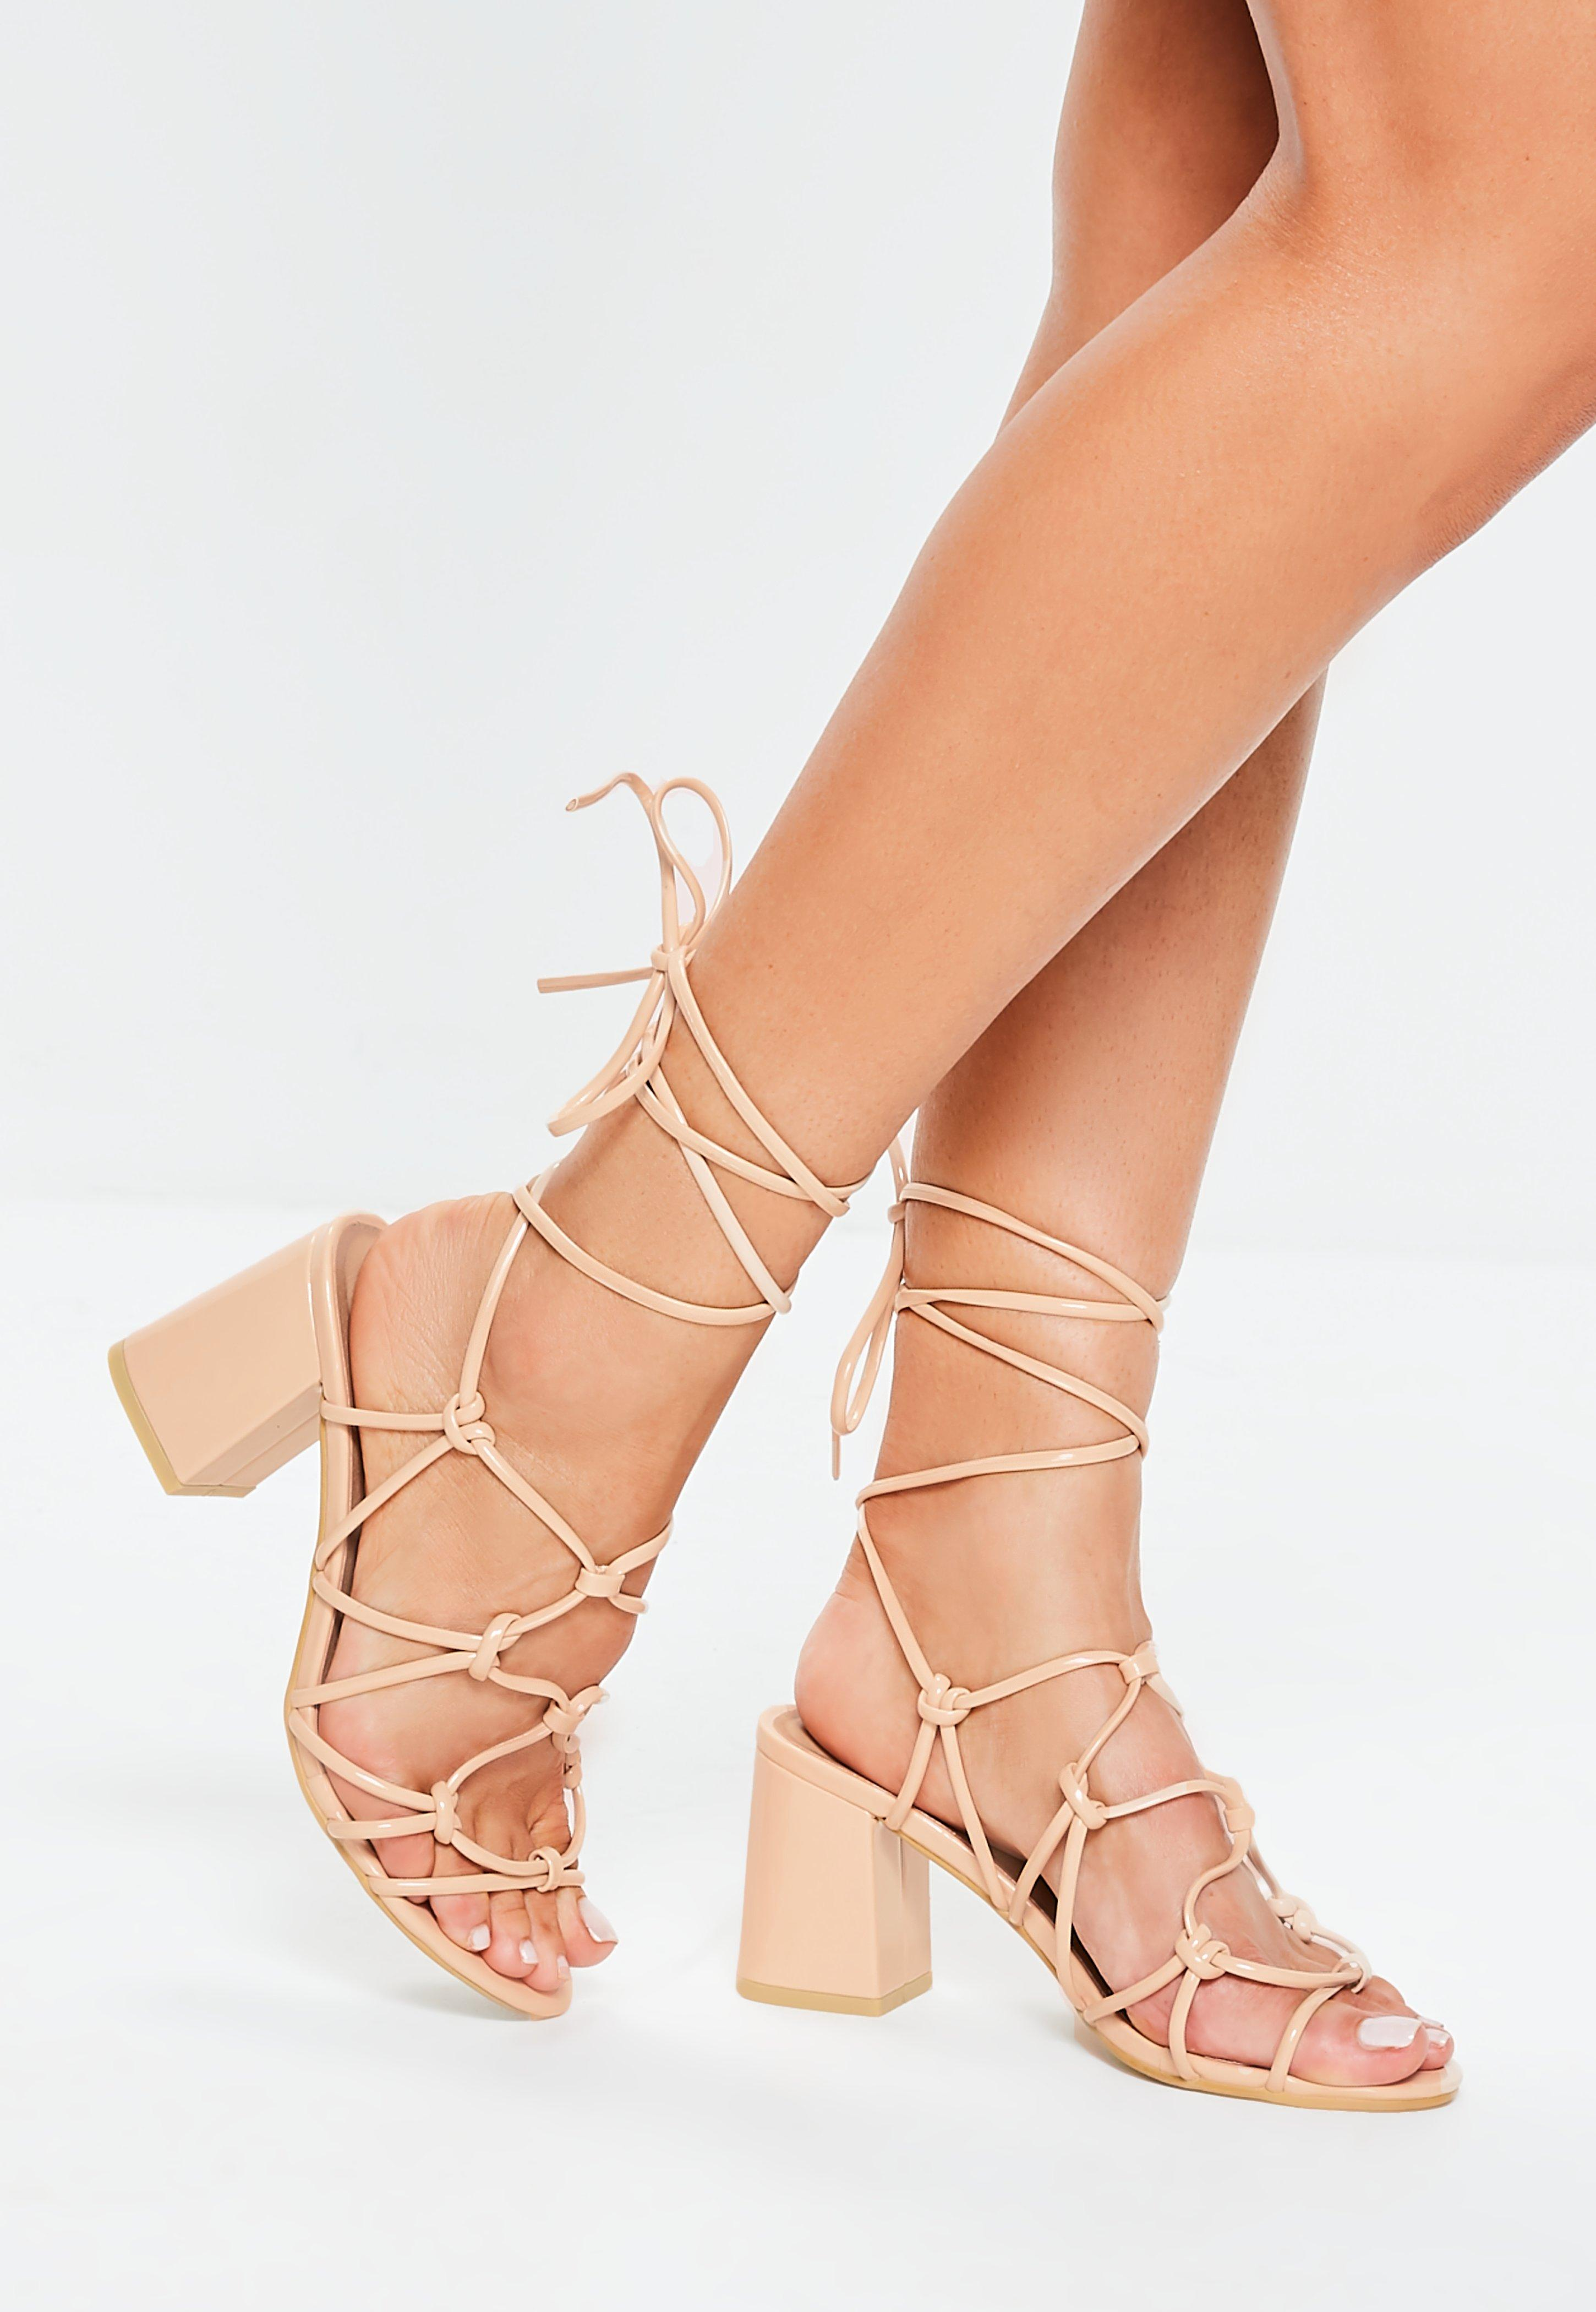 db5358abc365 Lace Up Sandals   Tie Up Sandals Online - Missguided